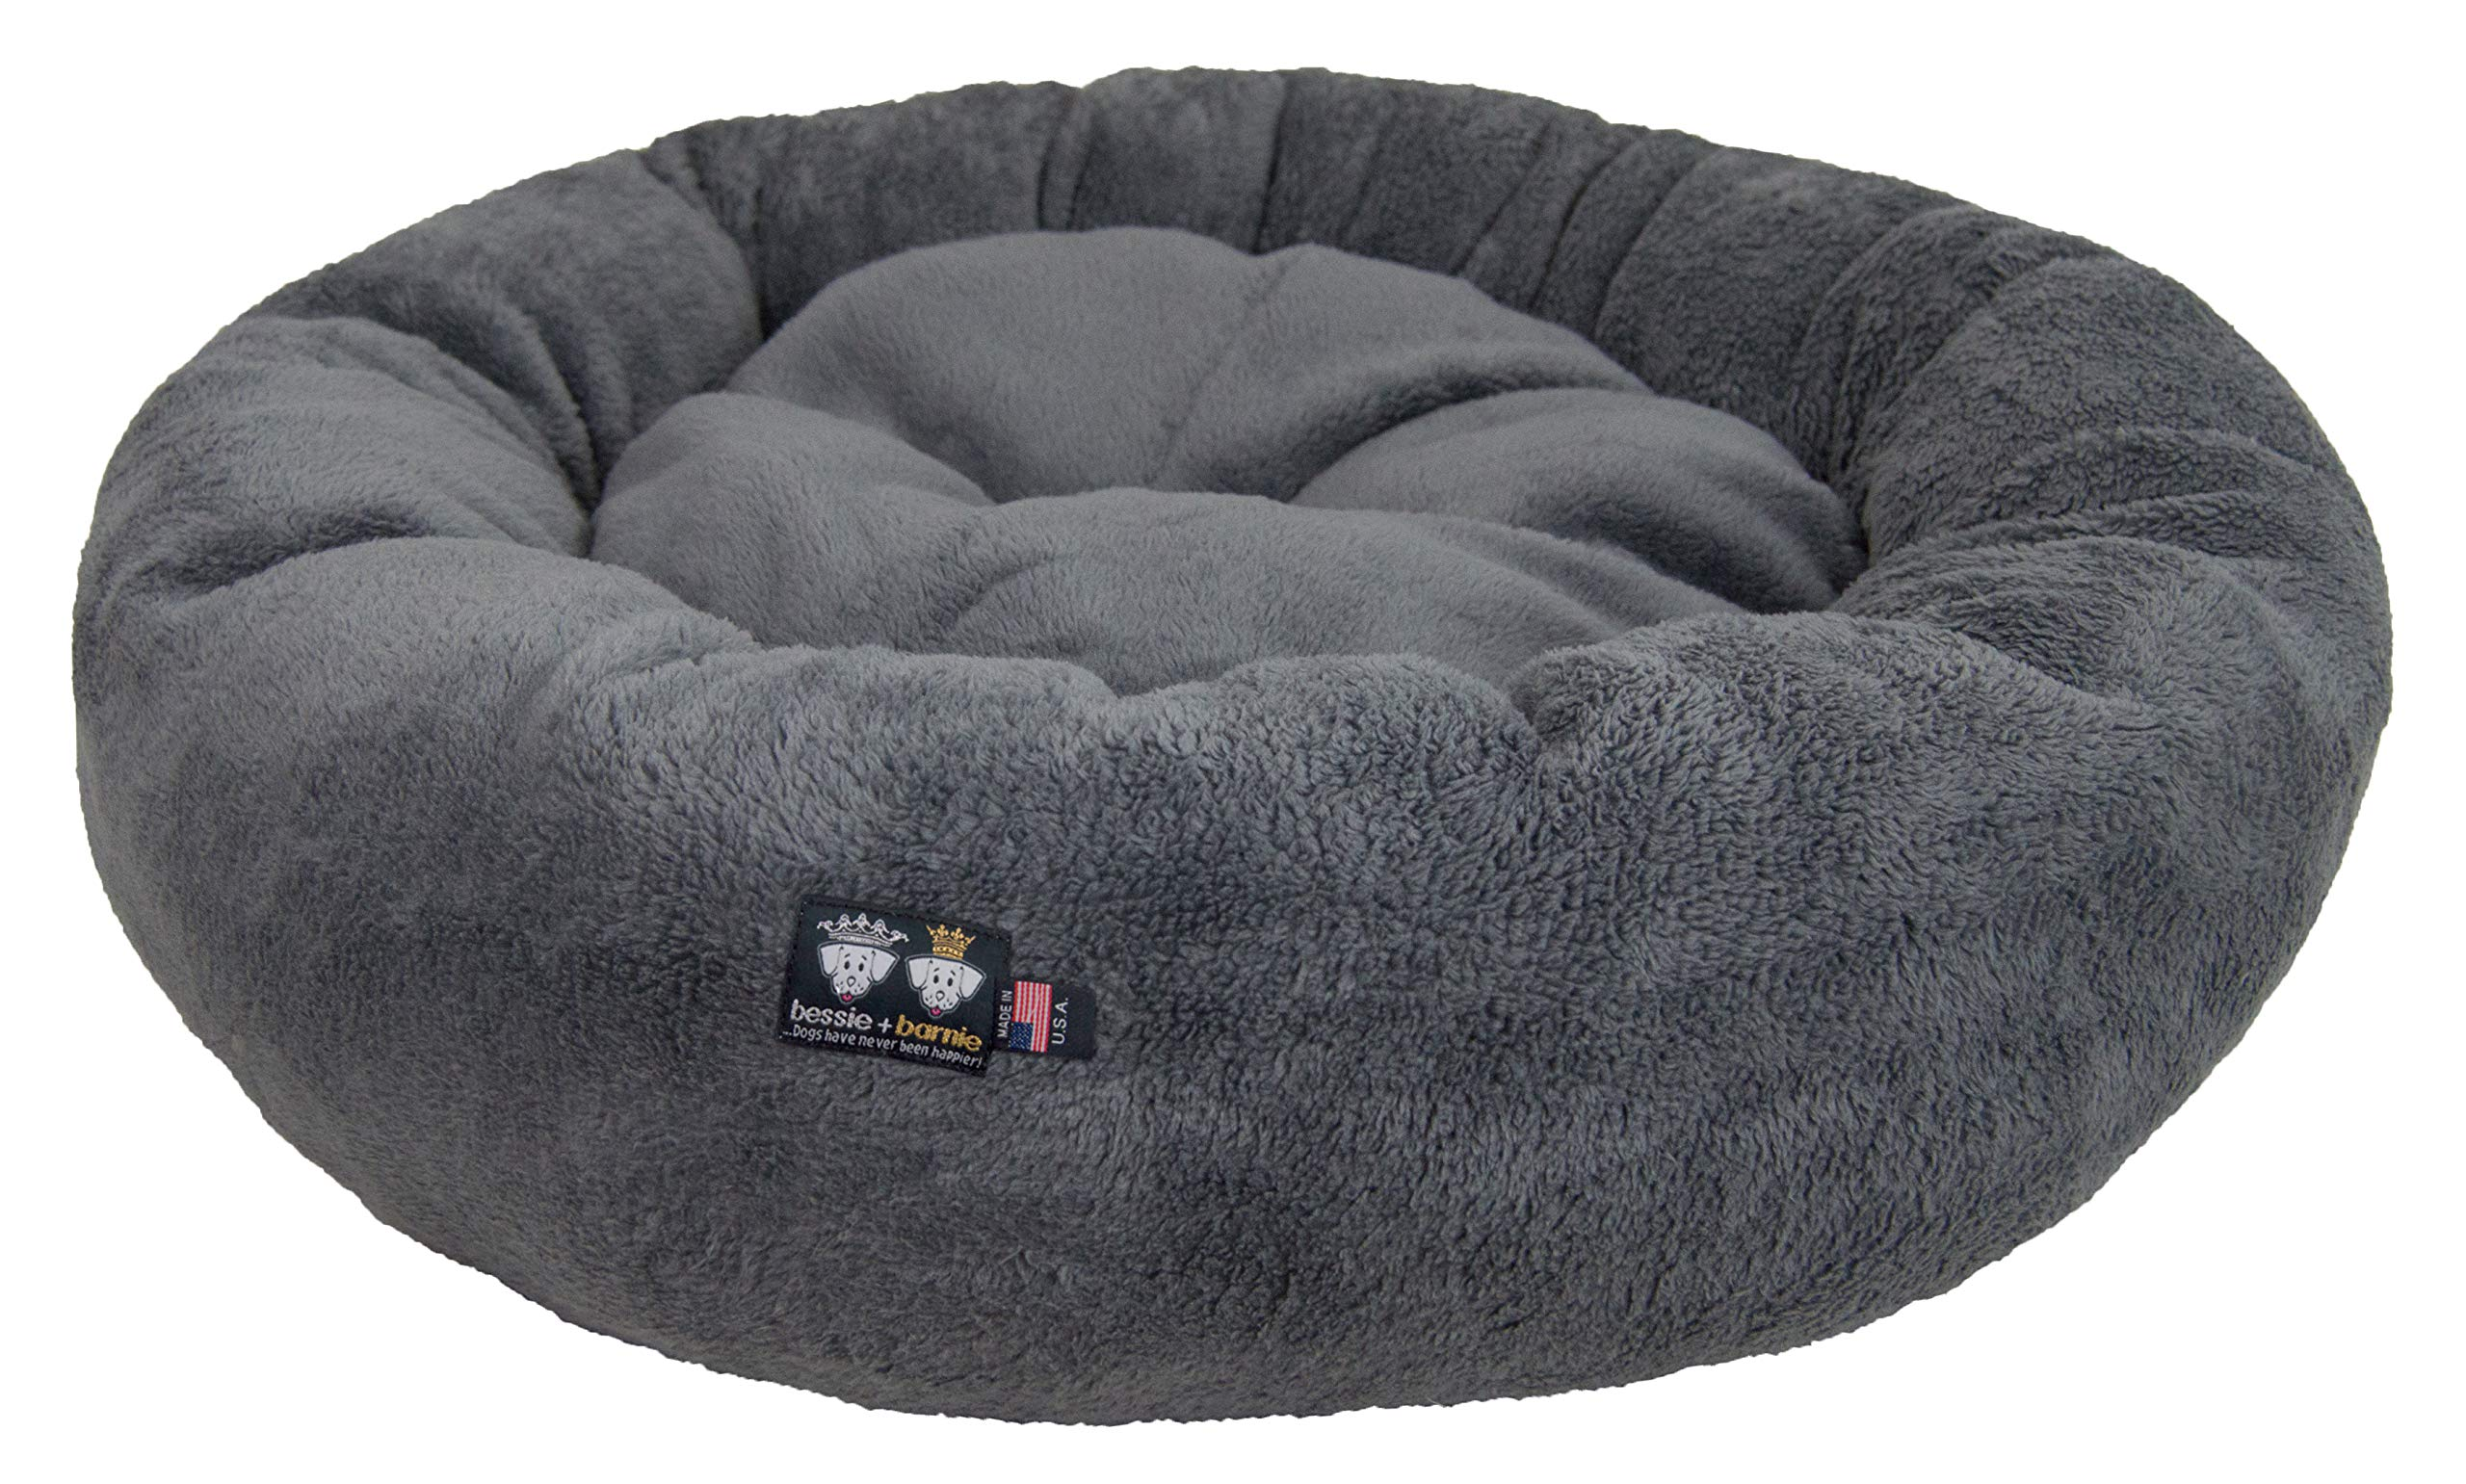 BESSIE AND BARNIE Ultra Plush Deluxe Comfort Pet Dog & Cat Grey Snuggle Bed (Multiple Sizes) - Machine Washable, Made in The USA, Reversible, Durable Soft Fabrics, S - 23'' x 23'', Grey by BESSIE AND BARNIE